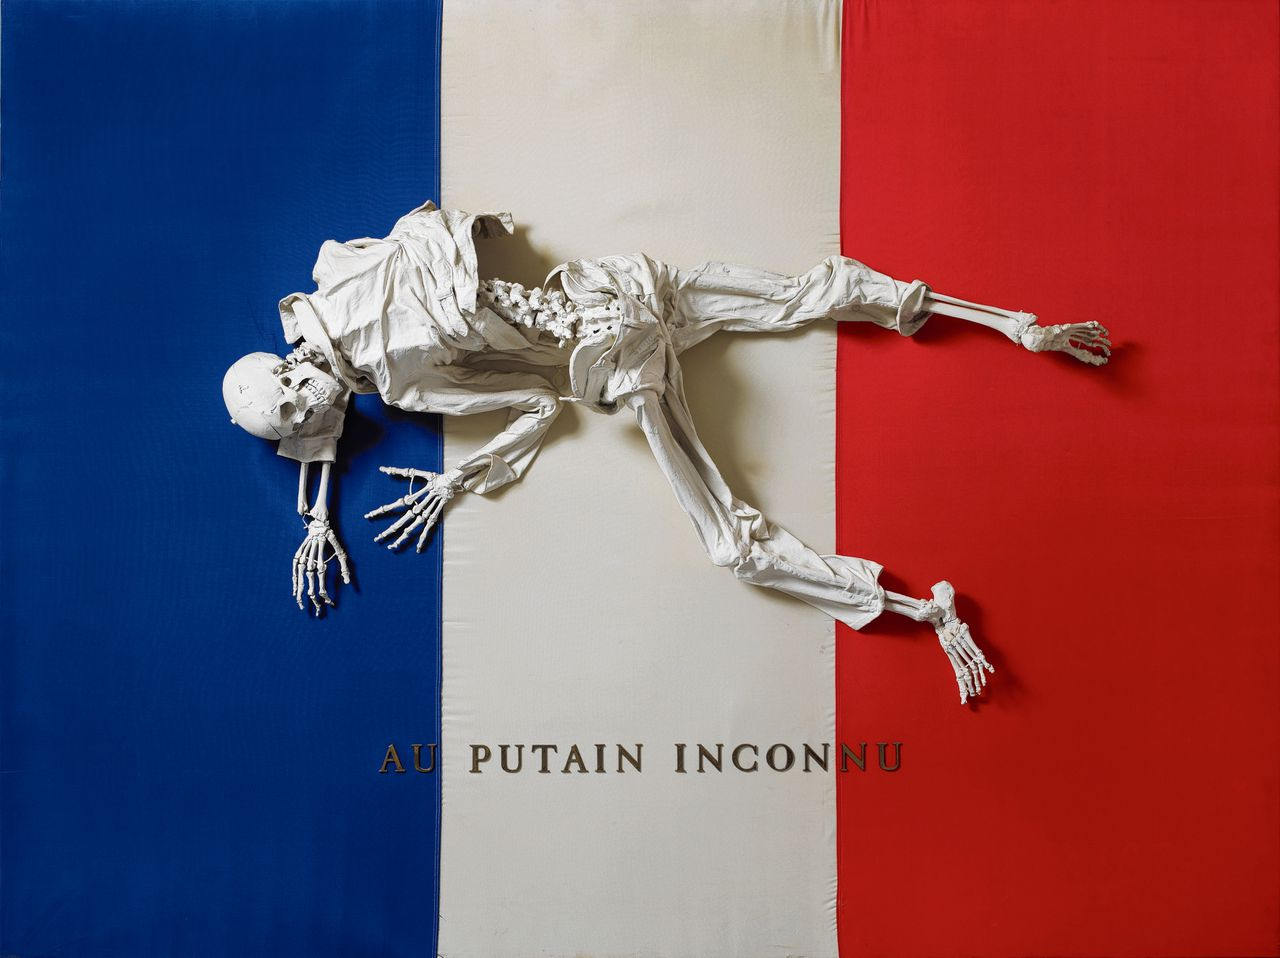 'Au putain inconnu' van Michel Journiac (1943–1995) uit 1973.